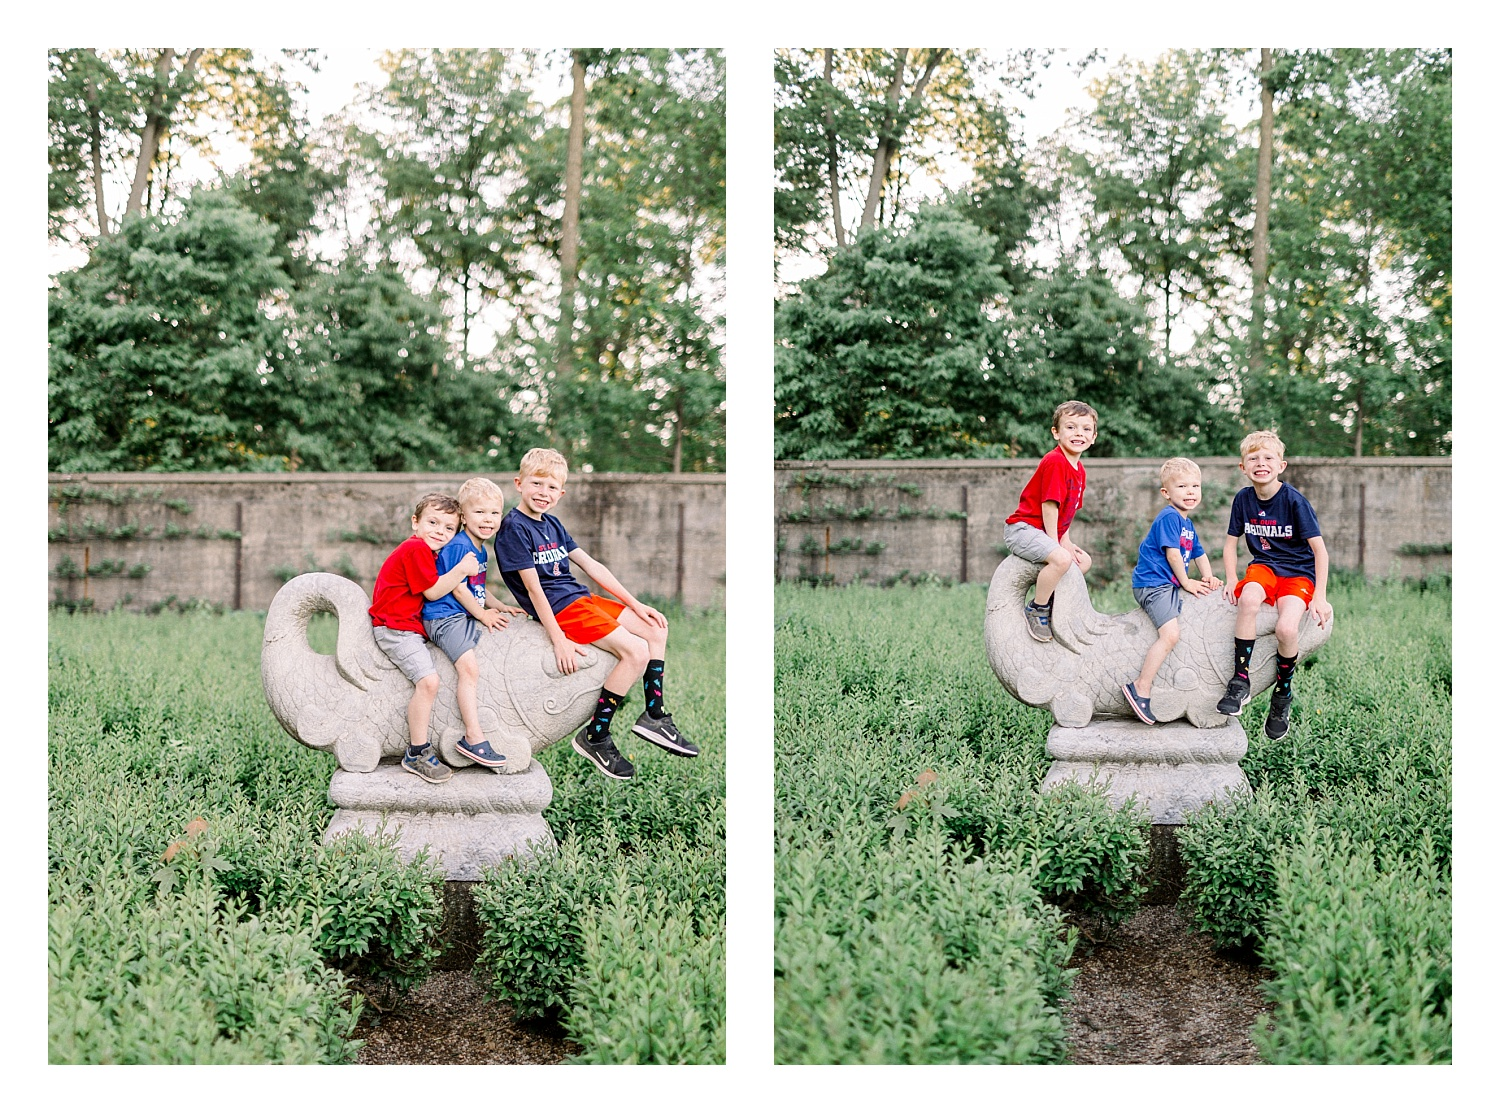 Wisconsin-Family-Photographers-Elle-x-Troy-Photography-The-Bopp-Family-Robert-Allerton-Park-Monticello-Illinois_0009.jpg